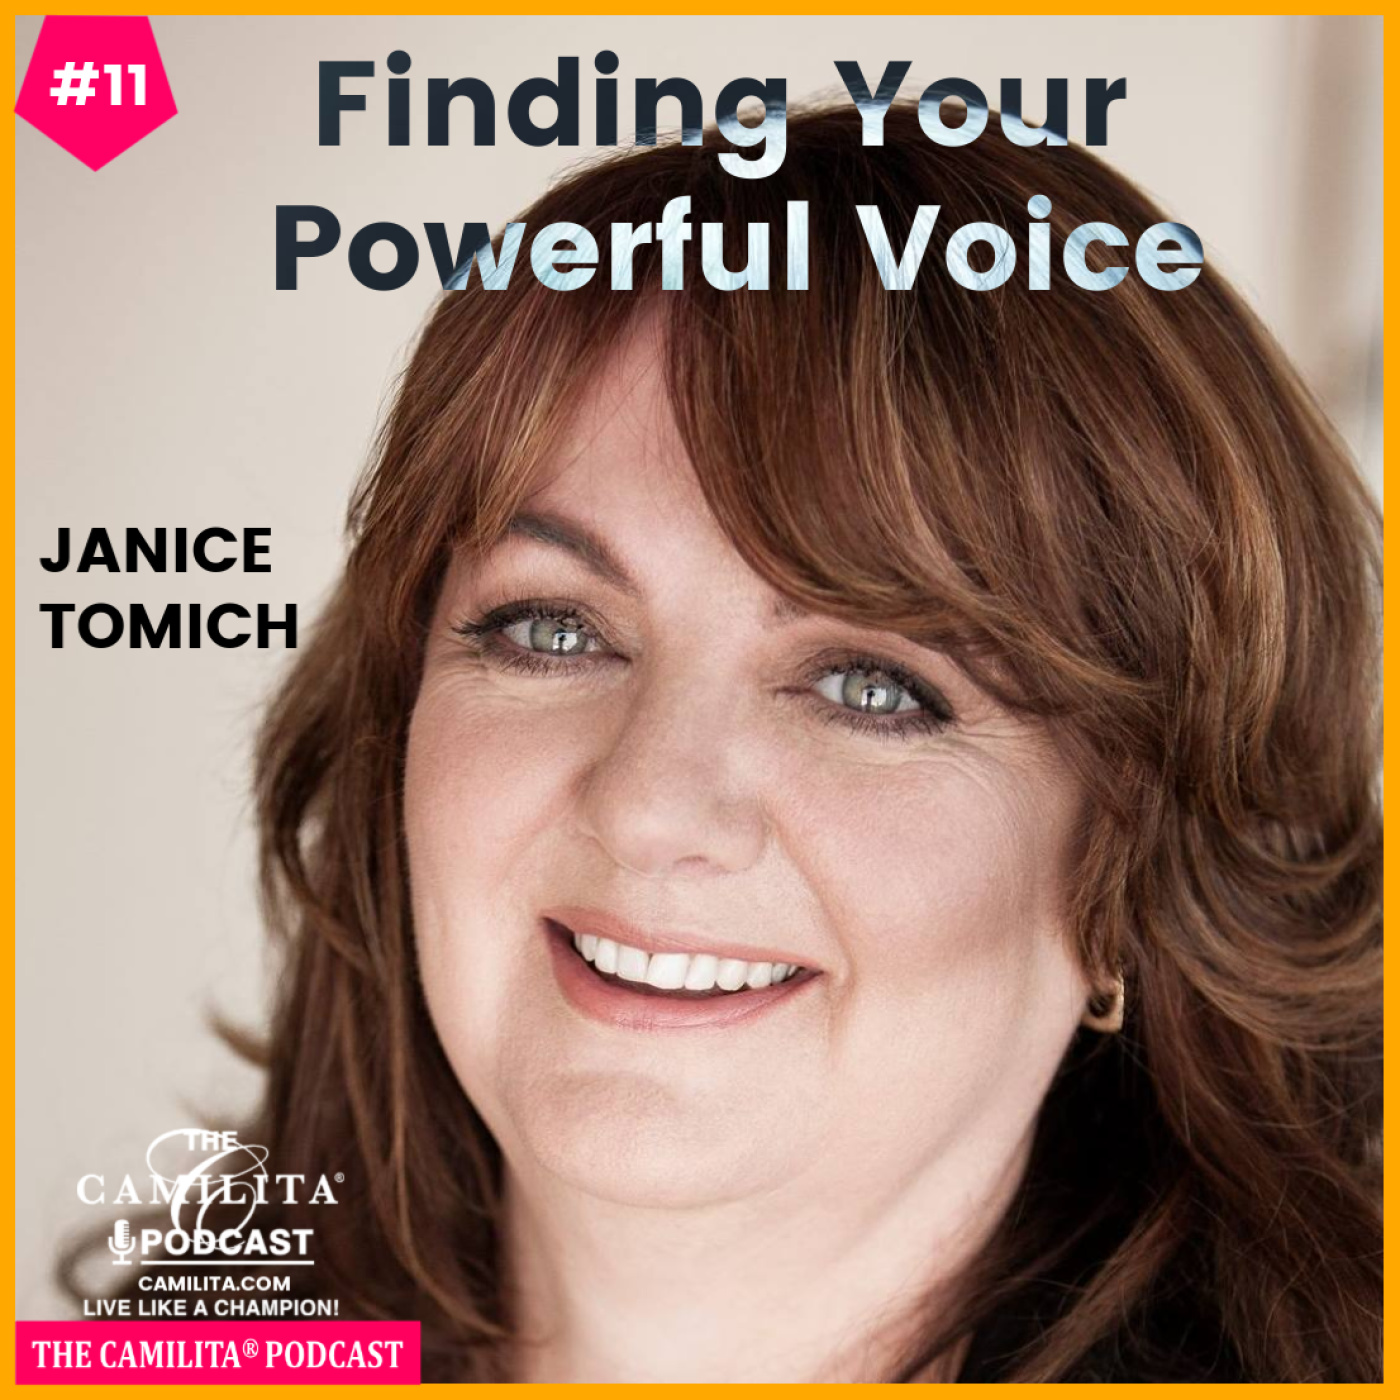 Finding Your Powerful Voice